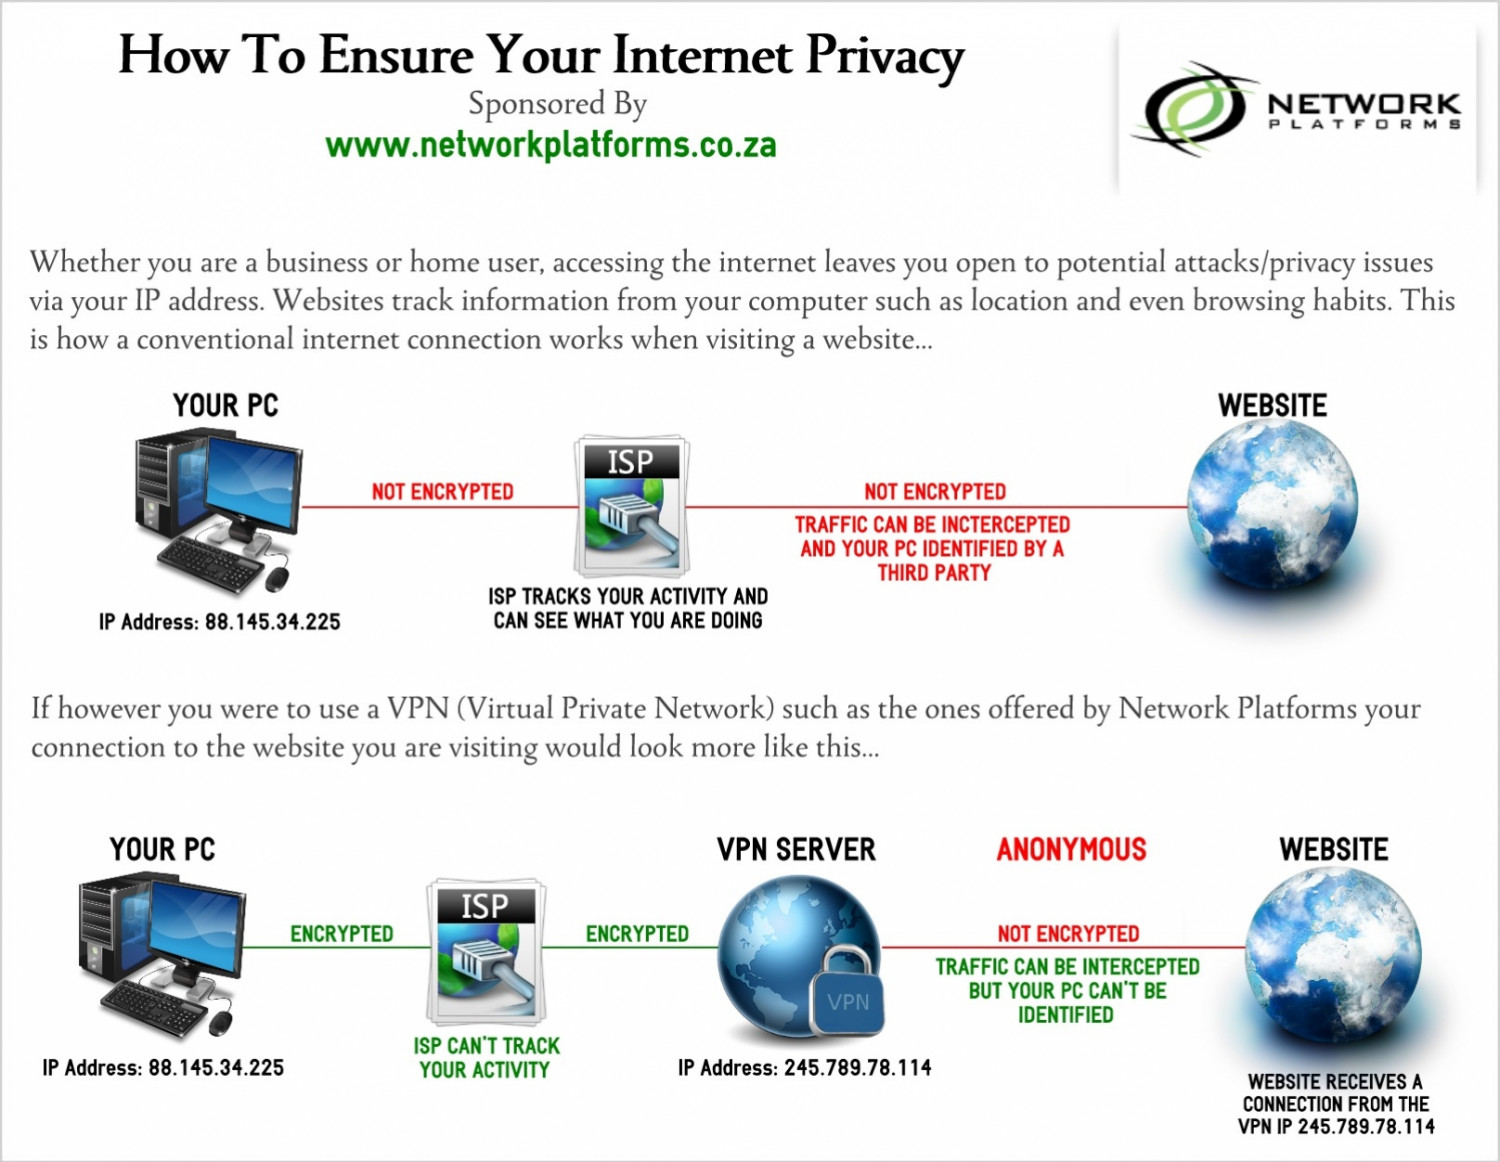 How To Ensure Your Interney Privacy Infographic